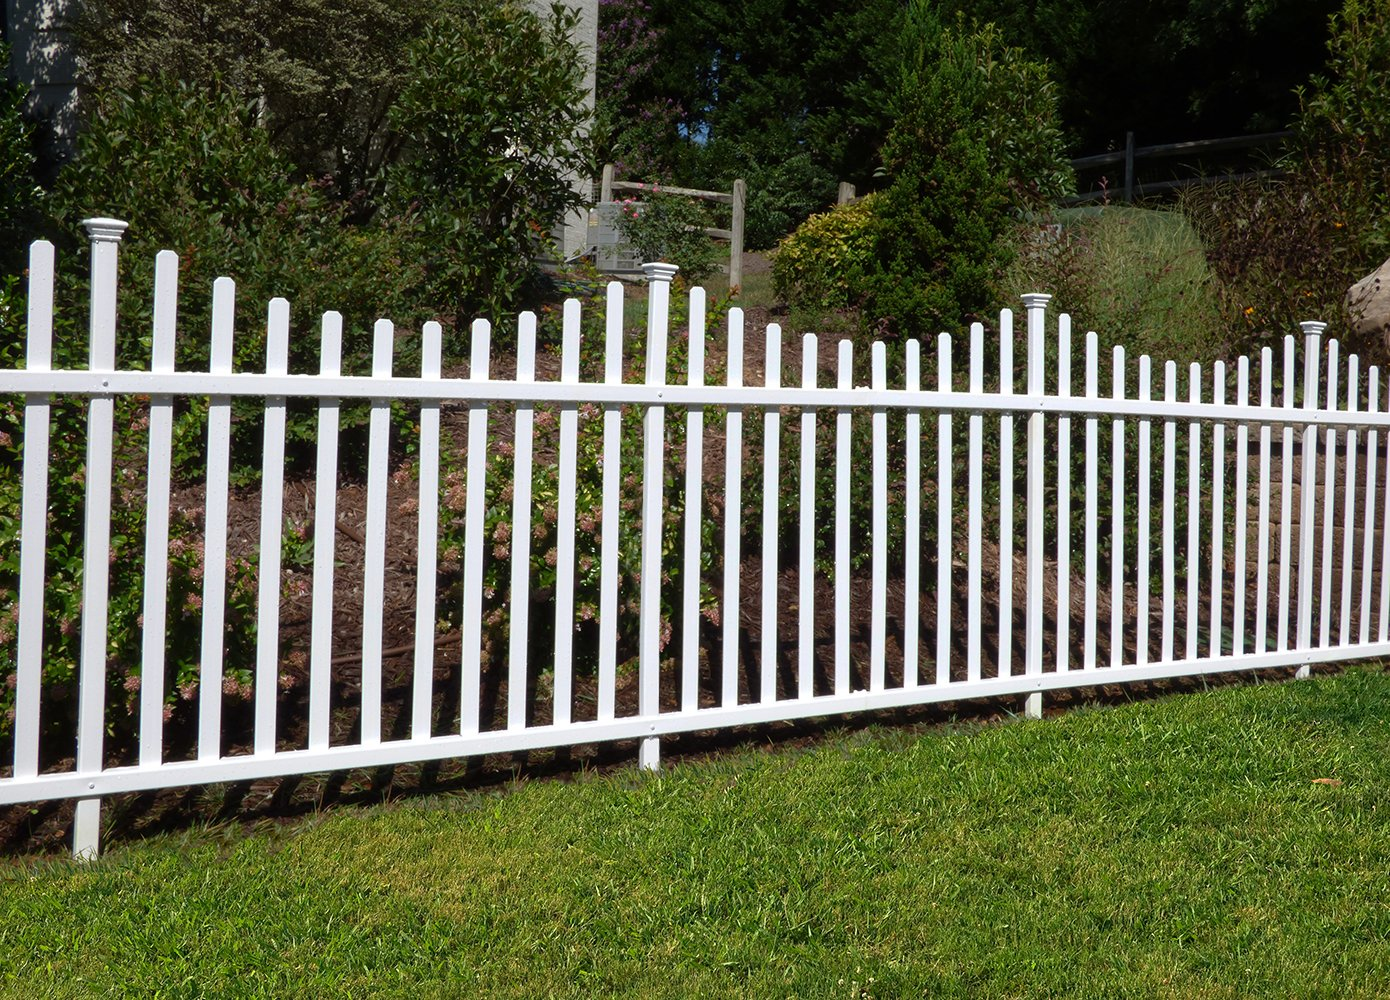 Zippity Outdoor Products Manchester Semi-Permanent Vinyl Fence Kit (2 Pack), 42